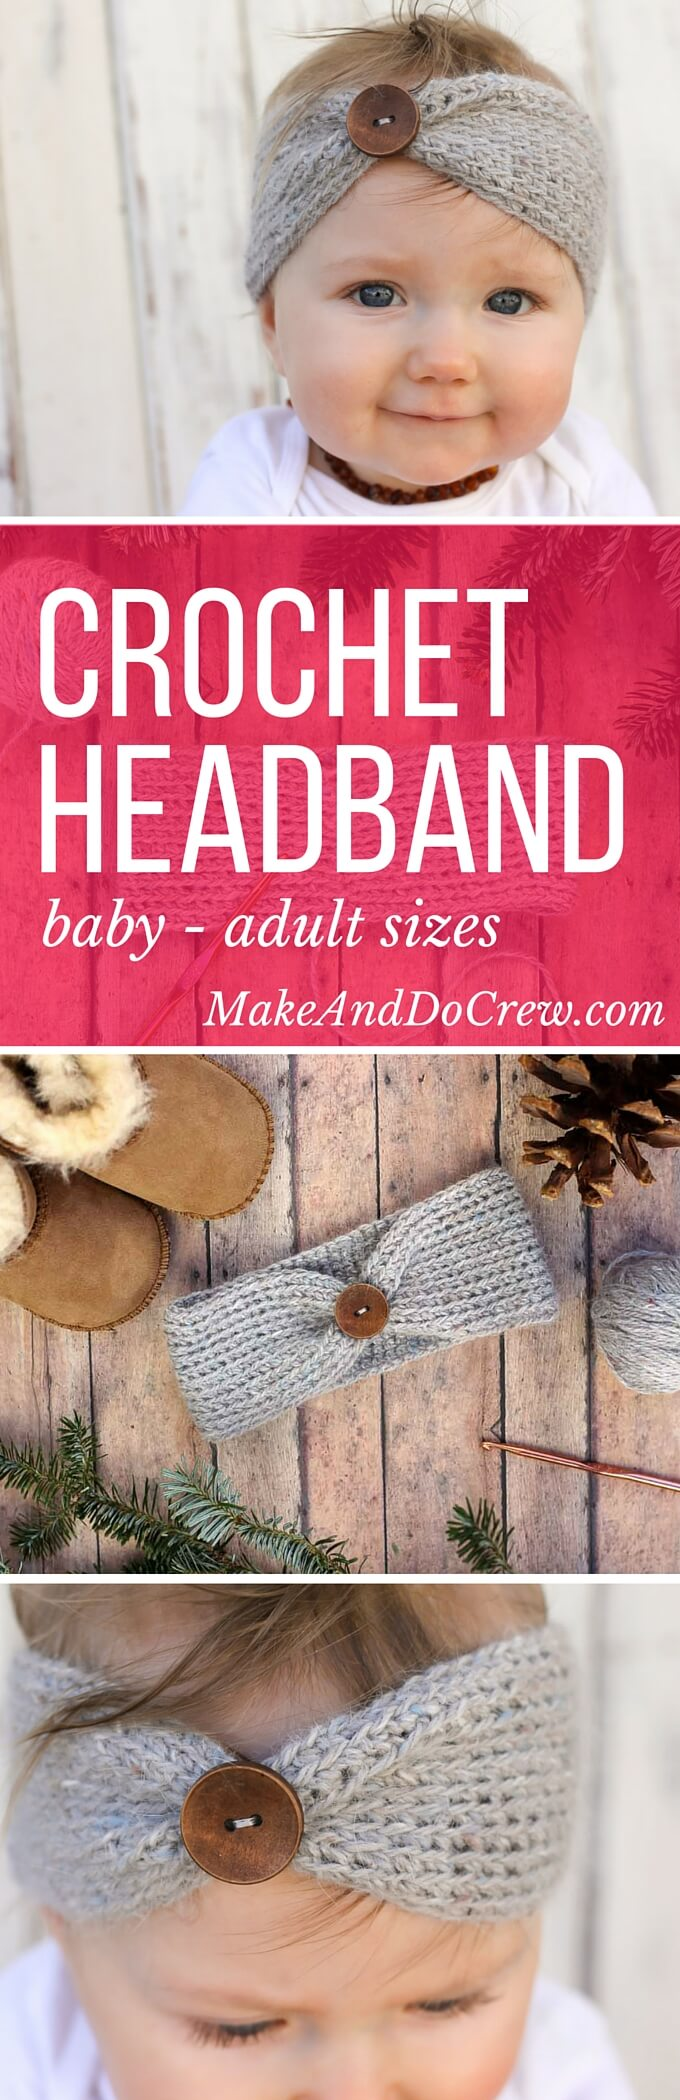 Free crochet headband pattern! This